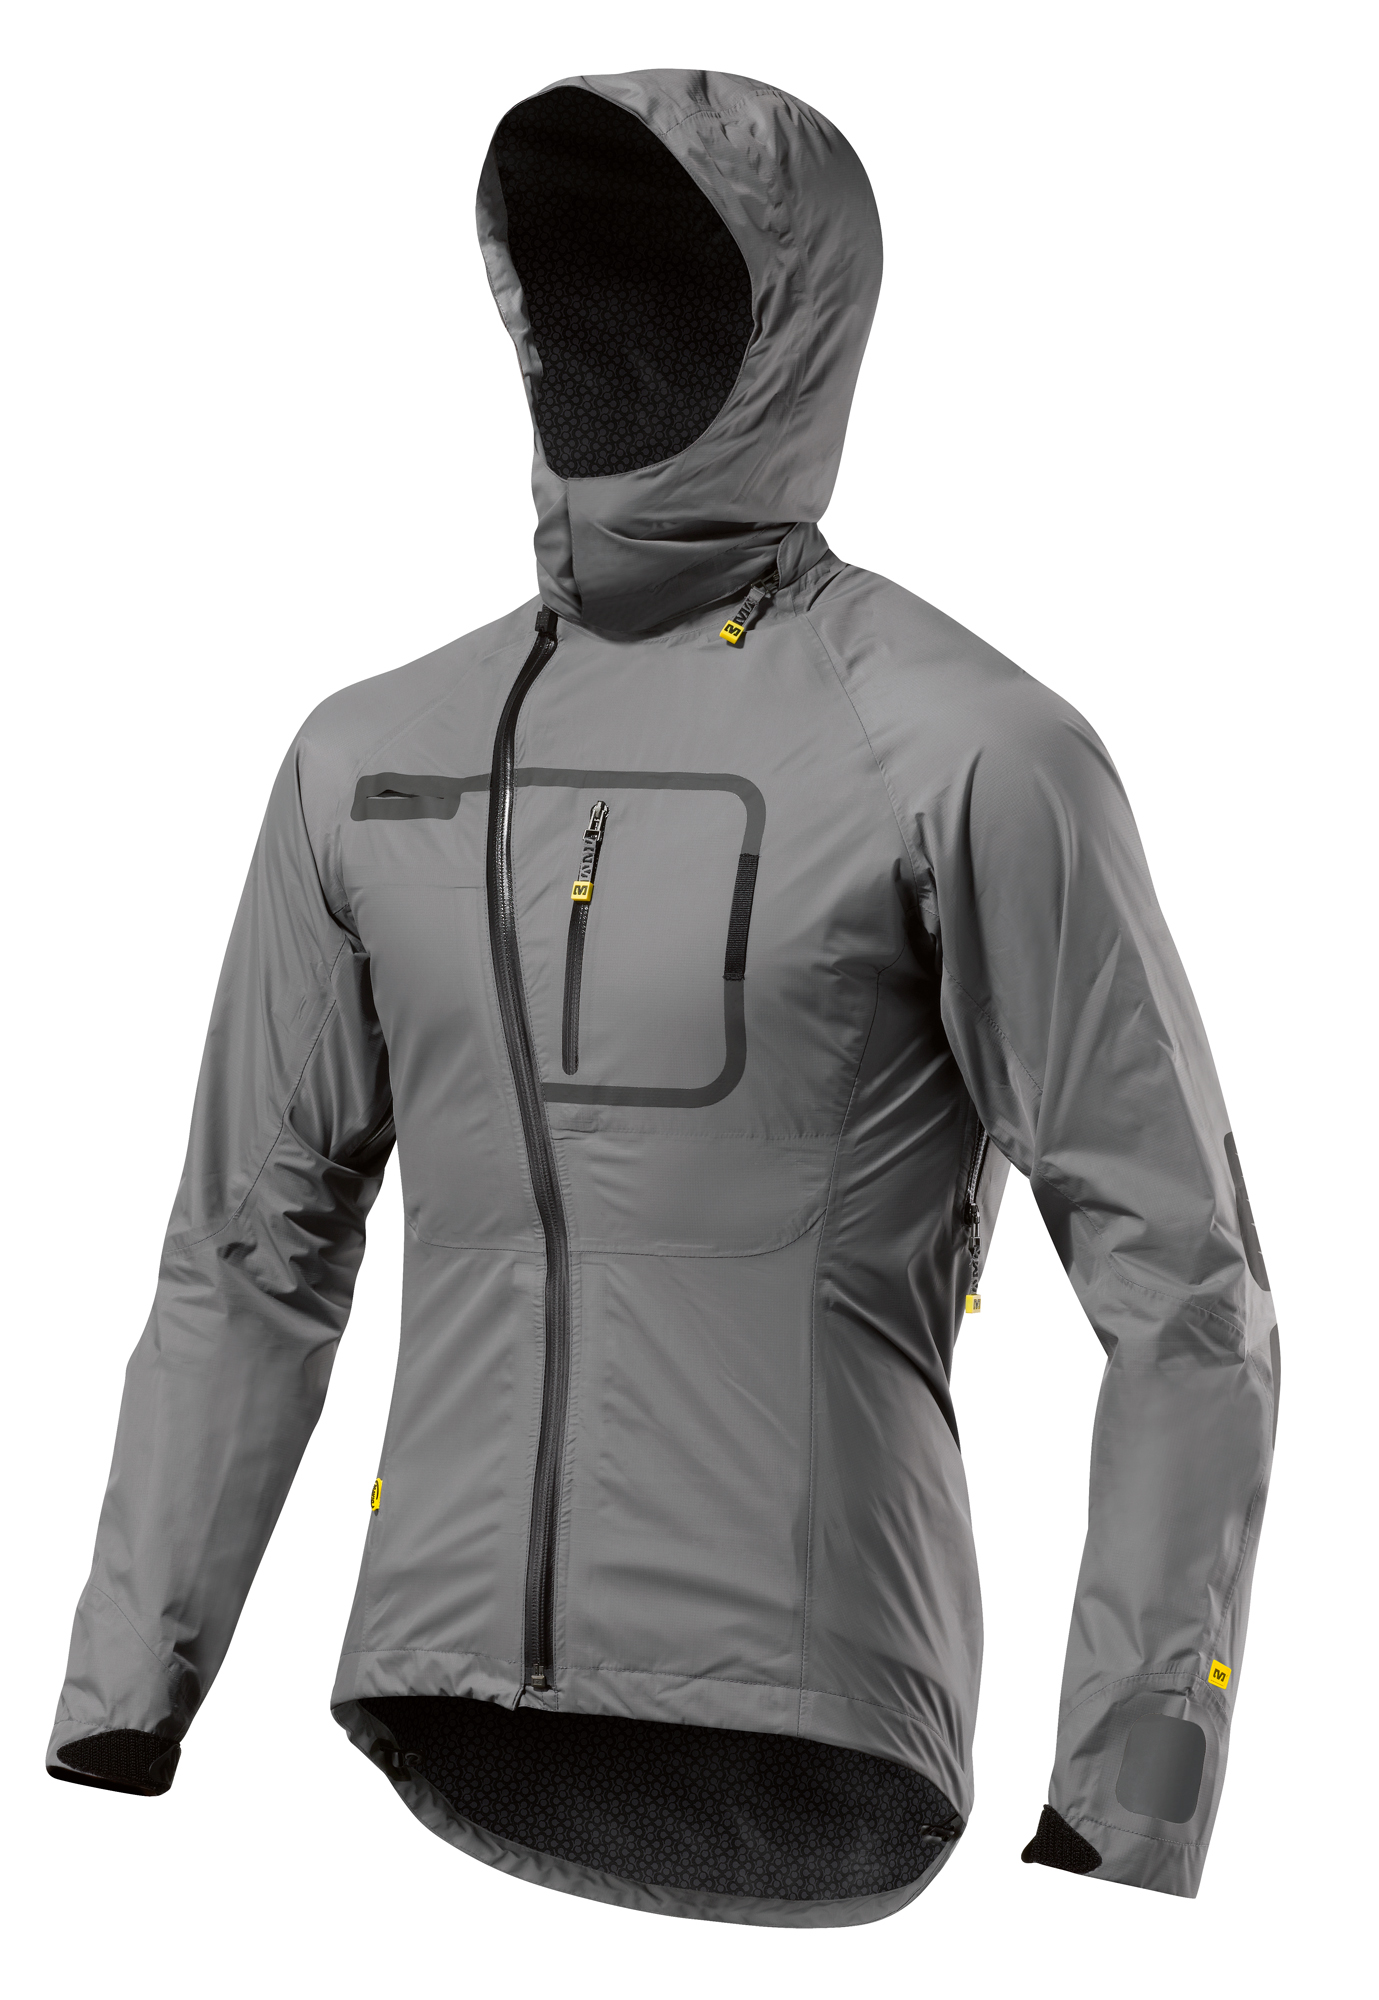 mavic stratos h2o fahrrad regenjacke grau 2013 ebay. Black Bedroom Furniture Sets. Home Design Ideas